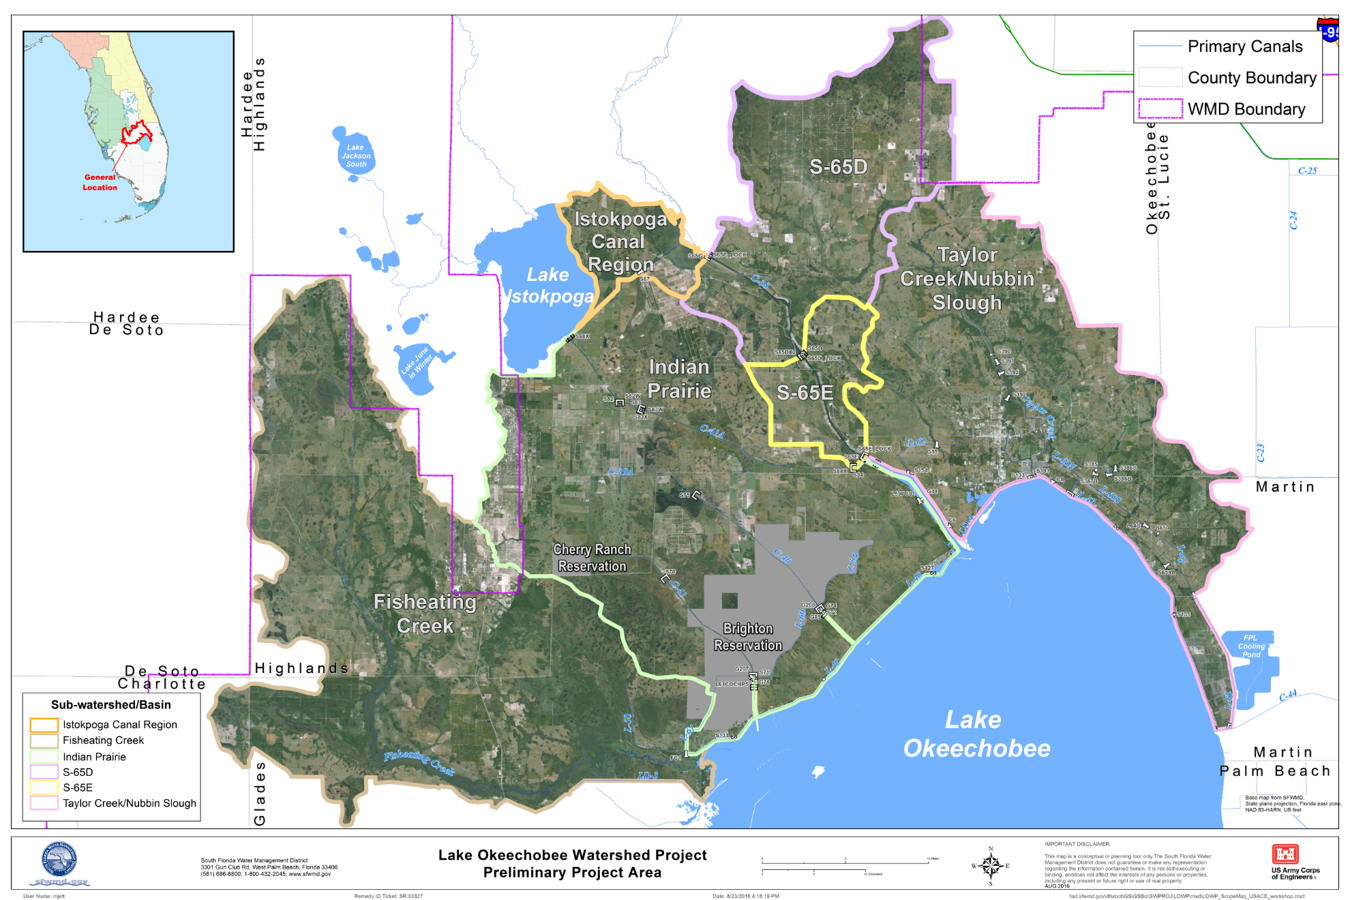 Map of Lake Okeechobee Watershed Restoration project area.